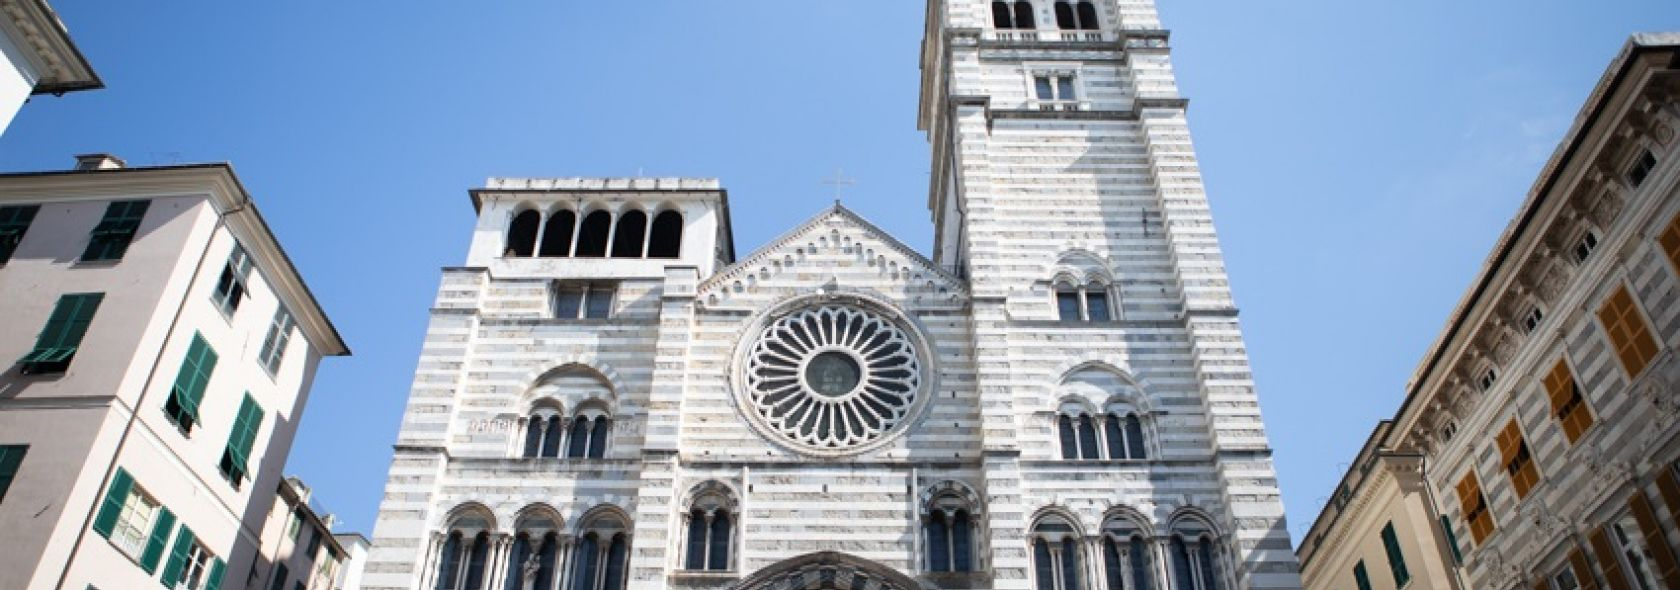 S.Lorenzo Cathedral